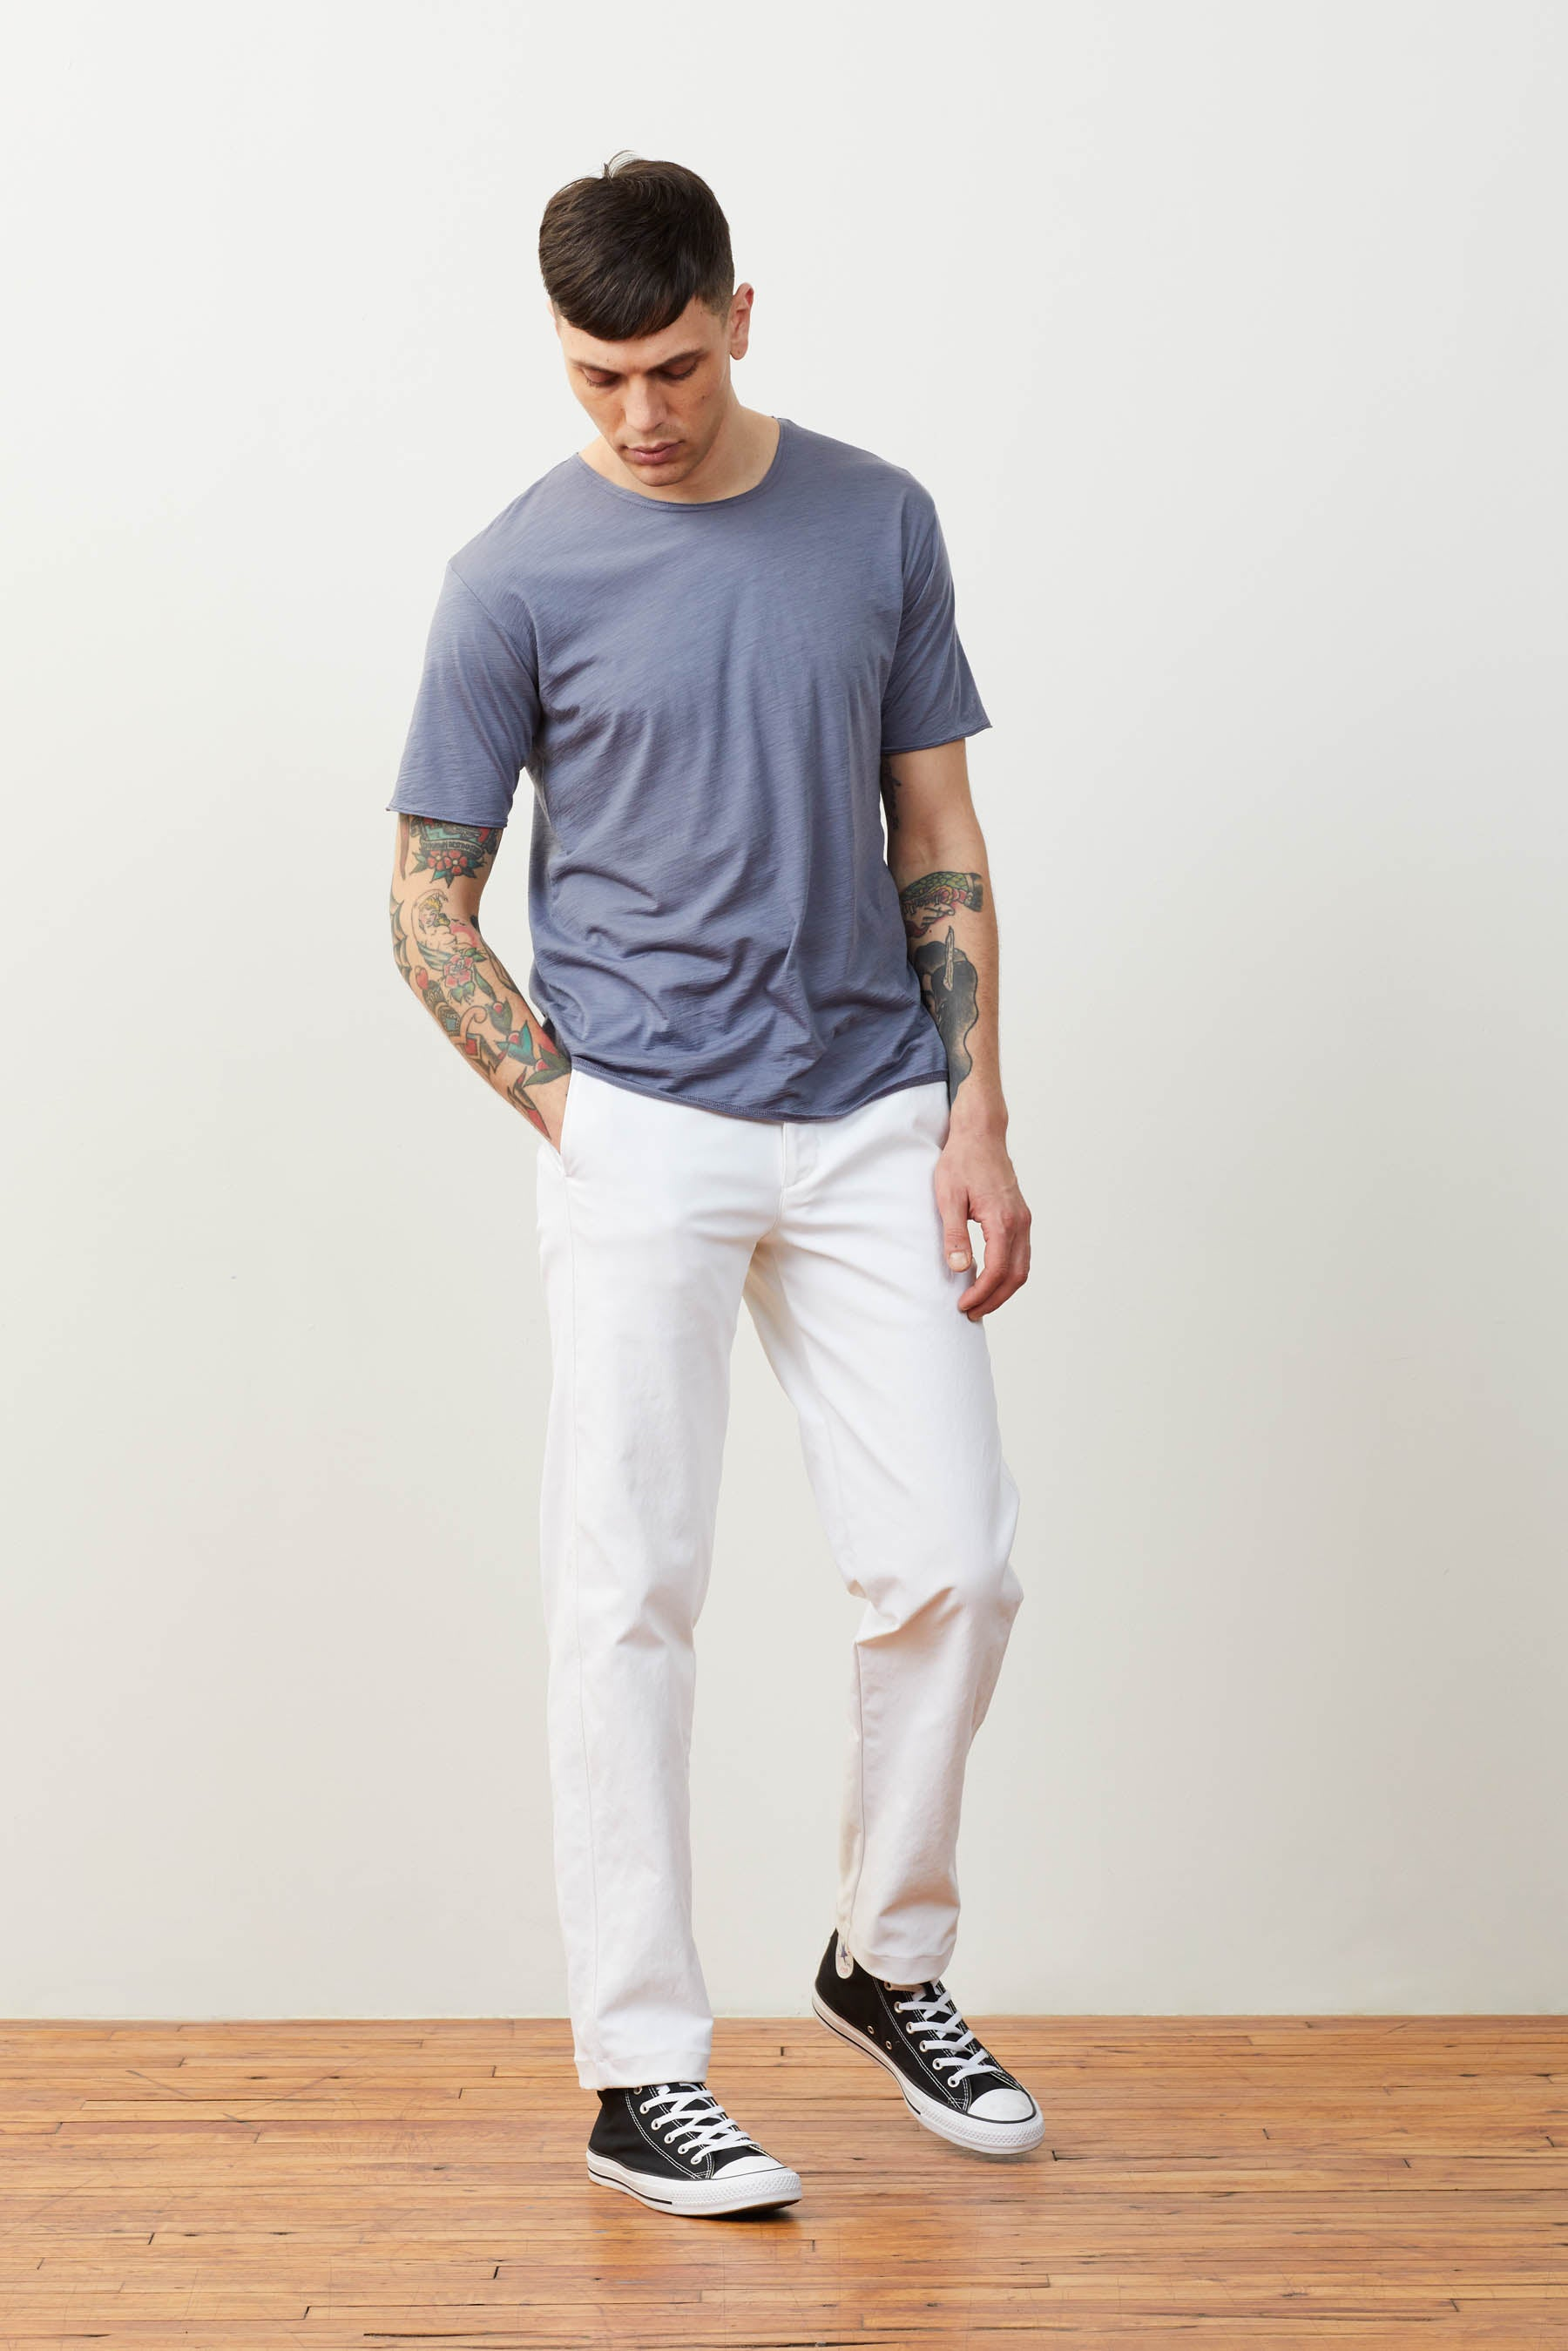 Full fit image of Daniele wearing the Bombworks in White with a Dreamweight Rawcut Shortsleeve in Dreamgray